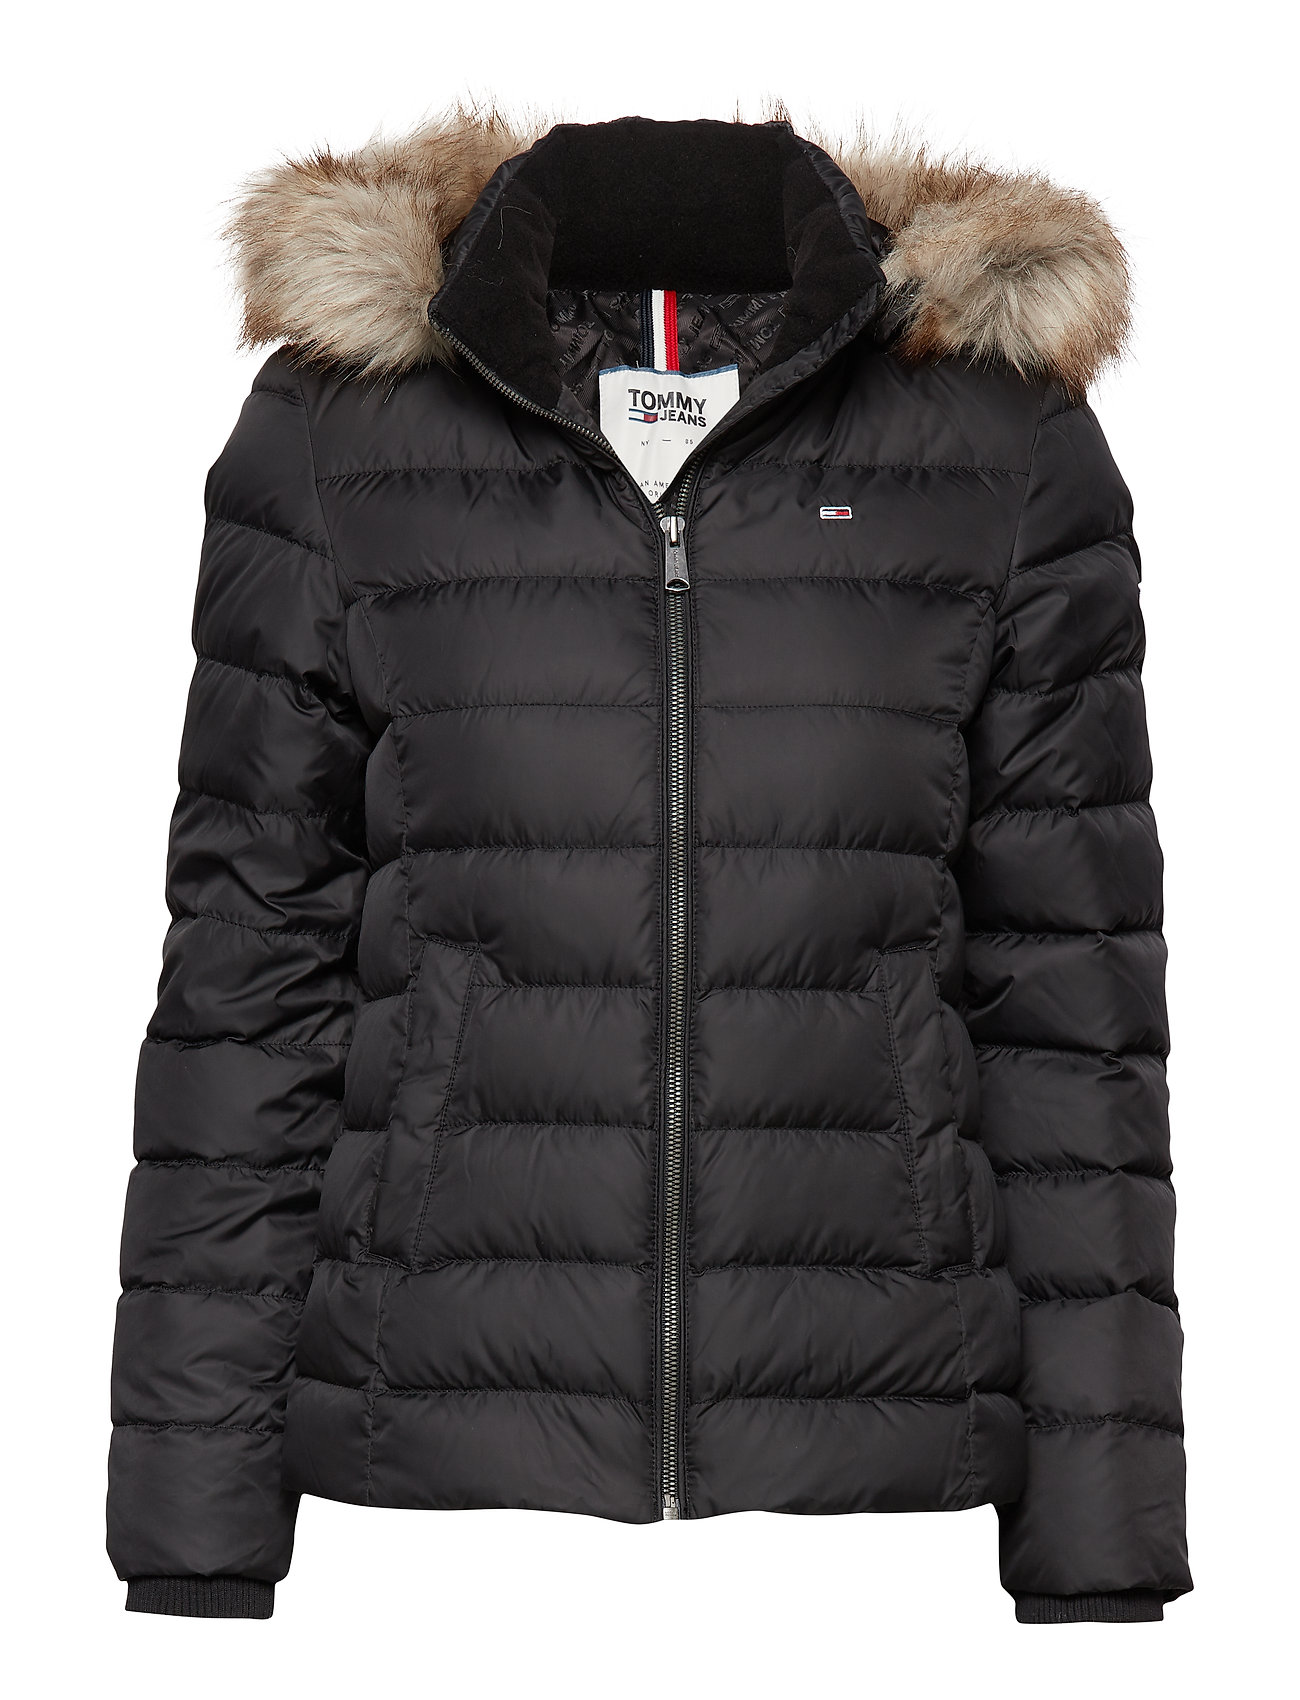 Tommy Jeans TJW ESSENTIAL HOODED - TOMMY BLACK